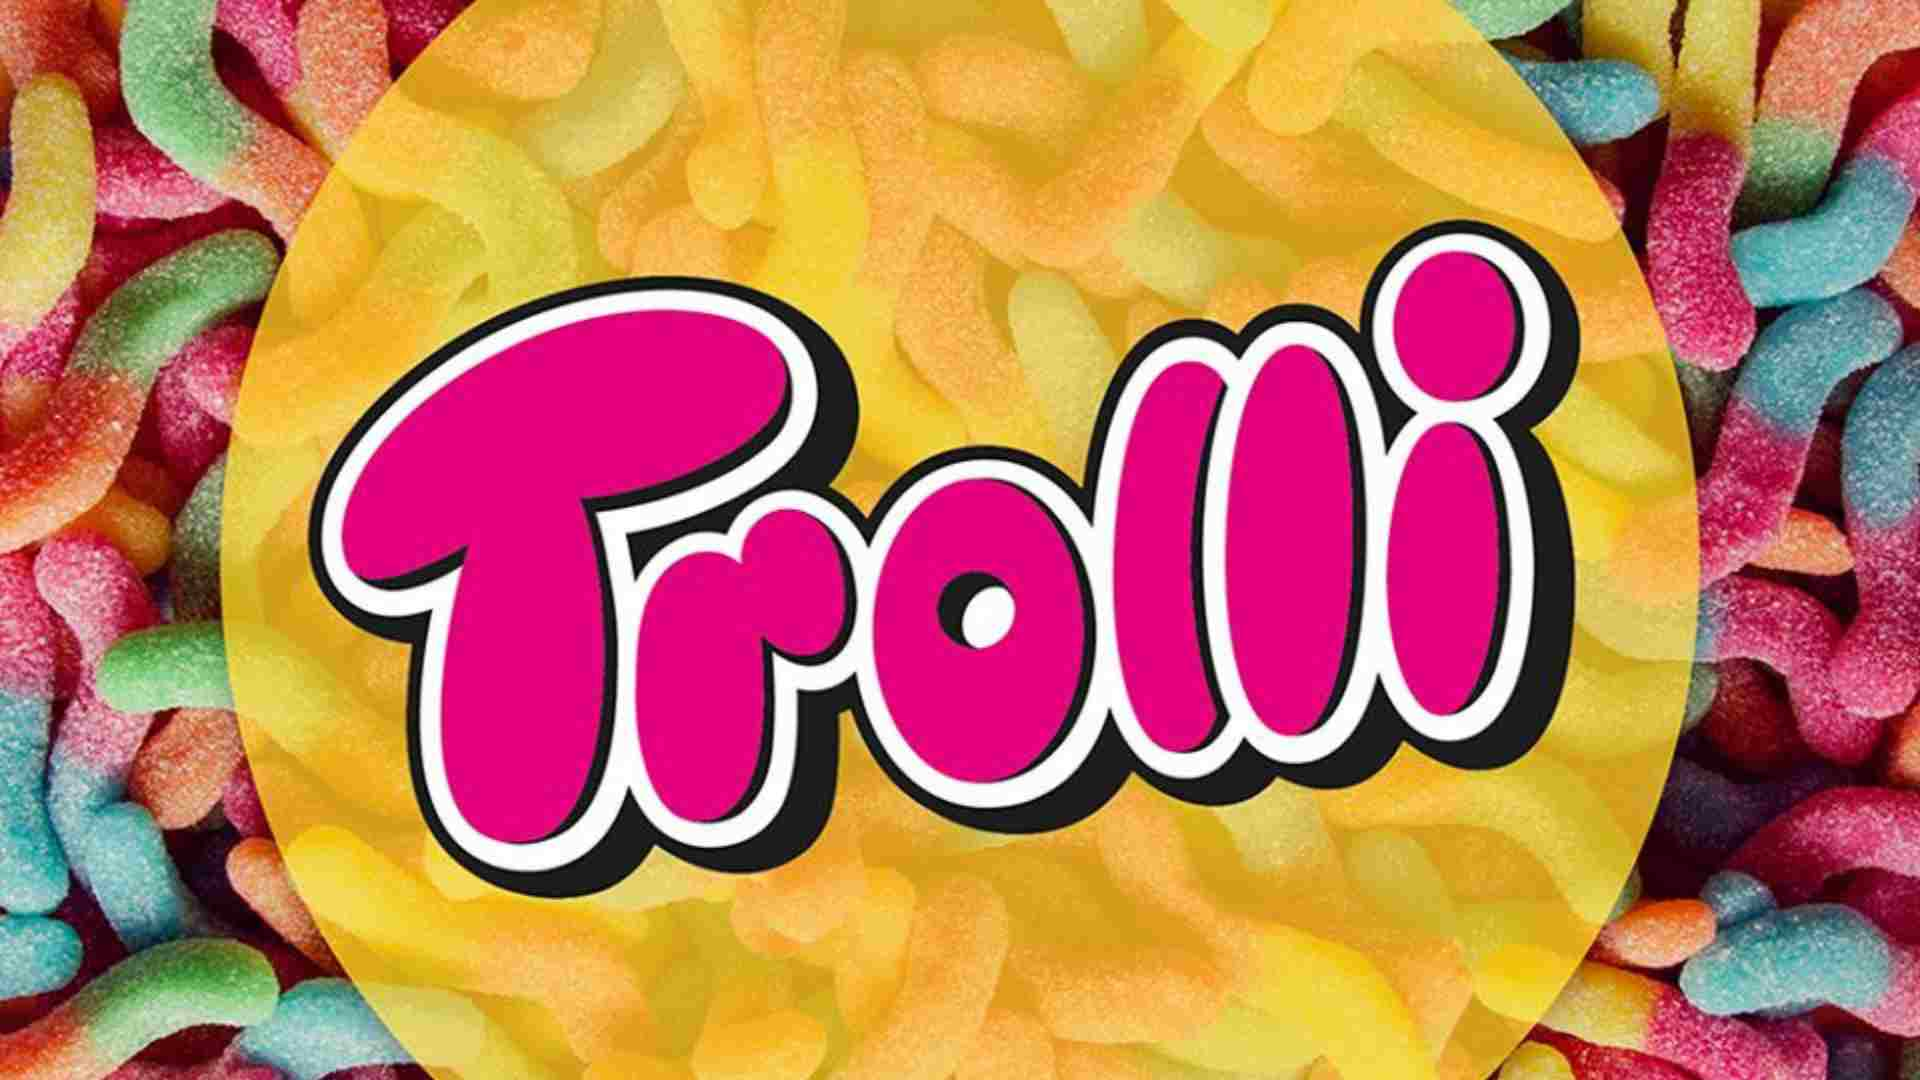 Miller Distributors Ltd appointed Local Distributor for Trolli candy products